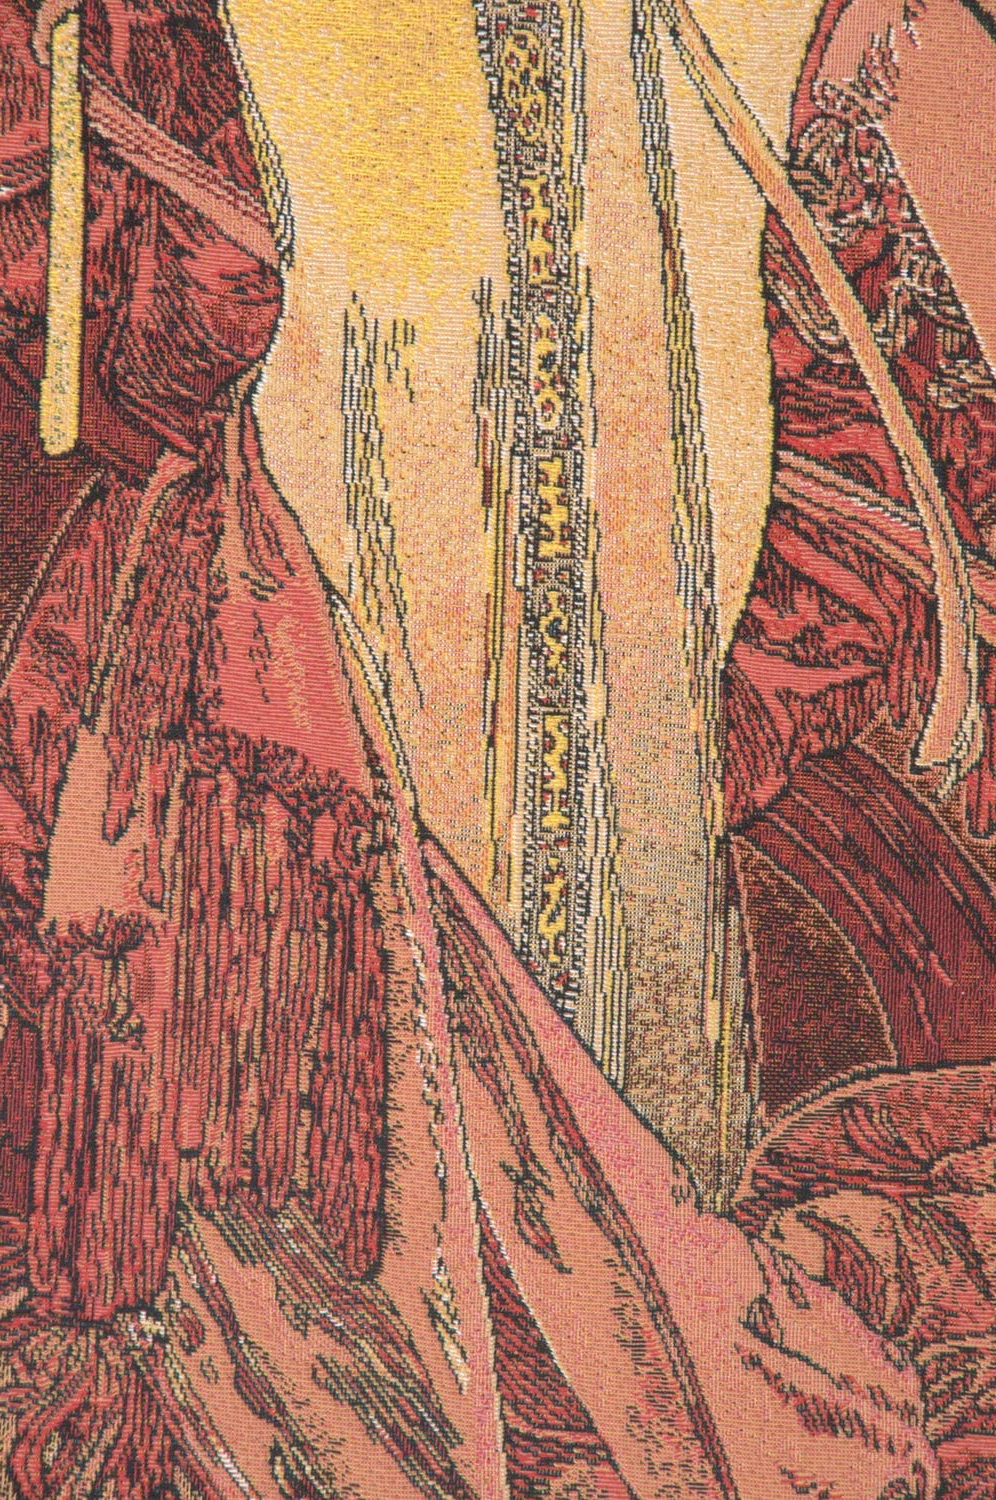 Latest Blended Fabric Mucha Autumn European Wall Hangings Throughout Amazon: Charlotte Home Furnishings Inc (View 4 of 20)